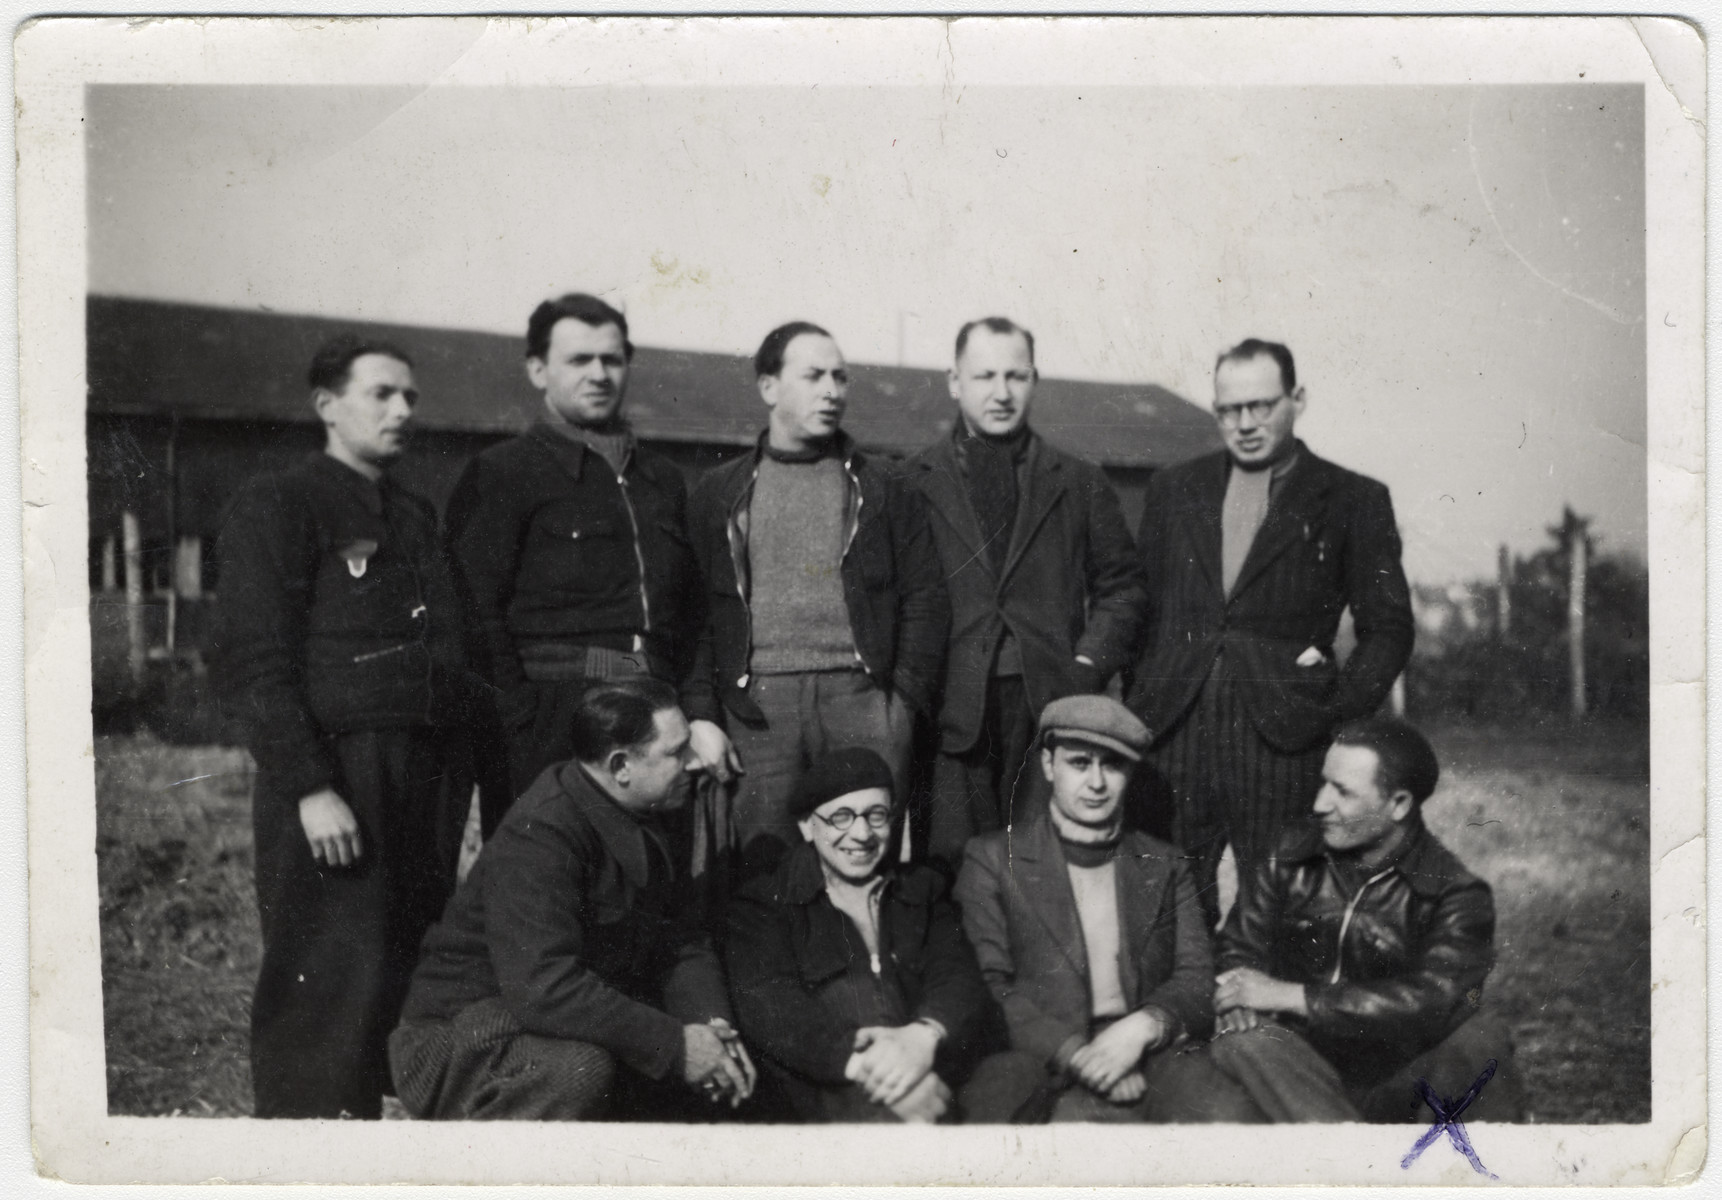 A group of Jewish inmates in the Pithviers transit camp.   Szmul Karpik is visible at the bottom right.